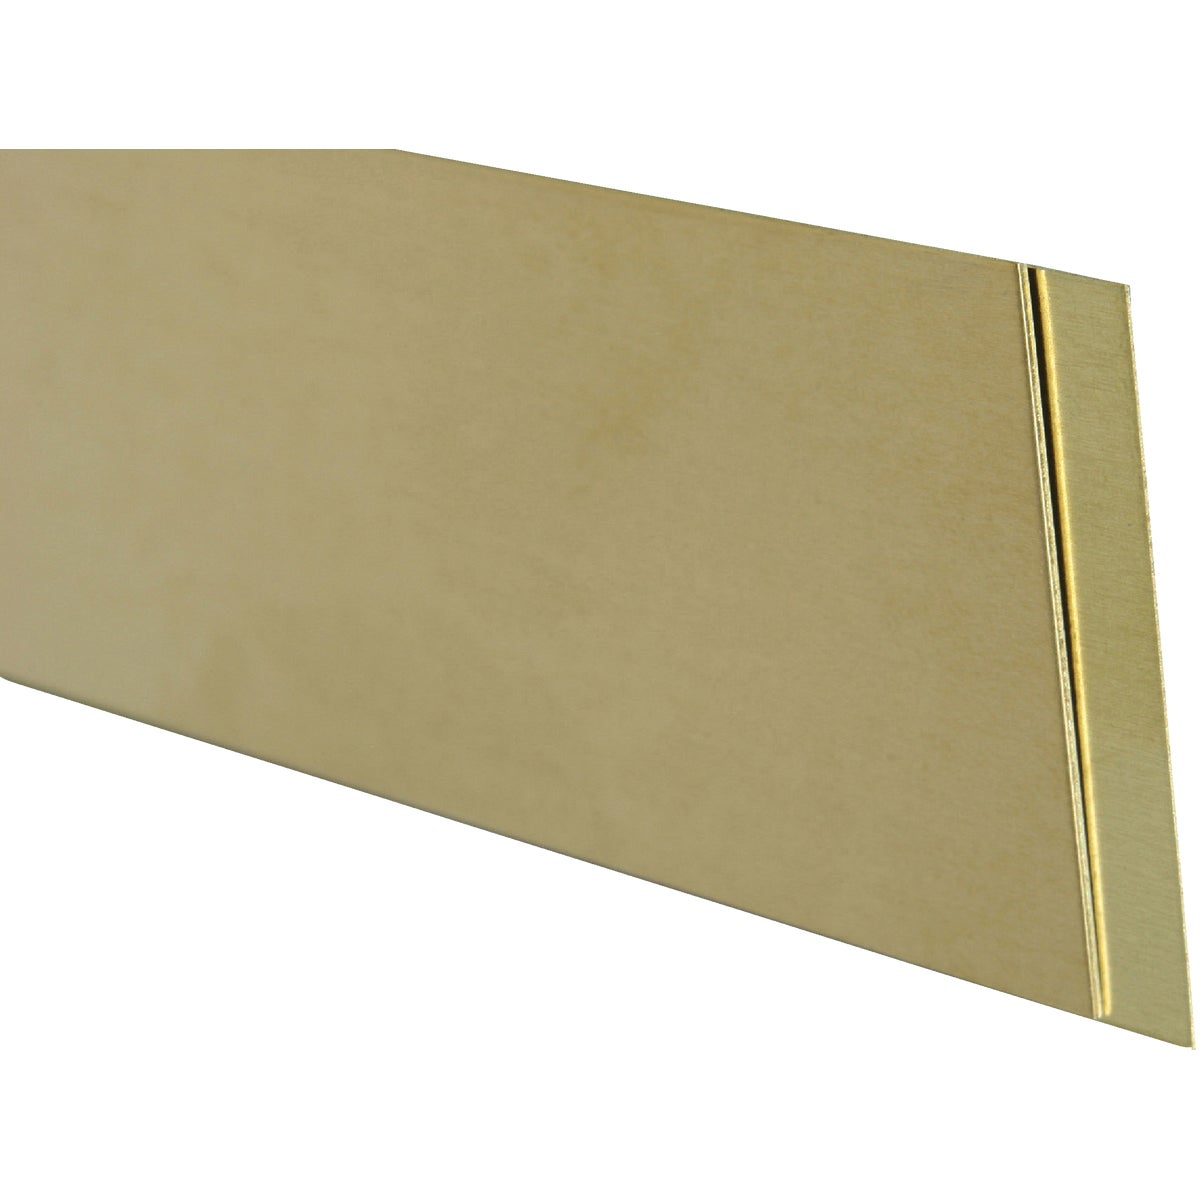 K & S Engineering .093X1/2X12 BRASS STRIP 226